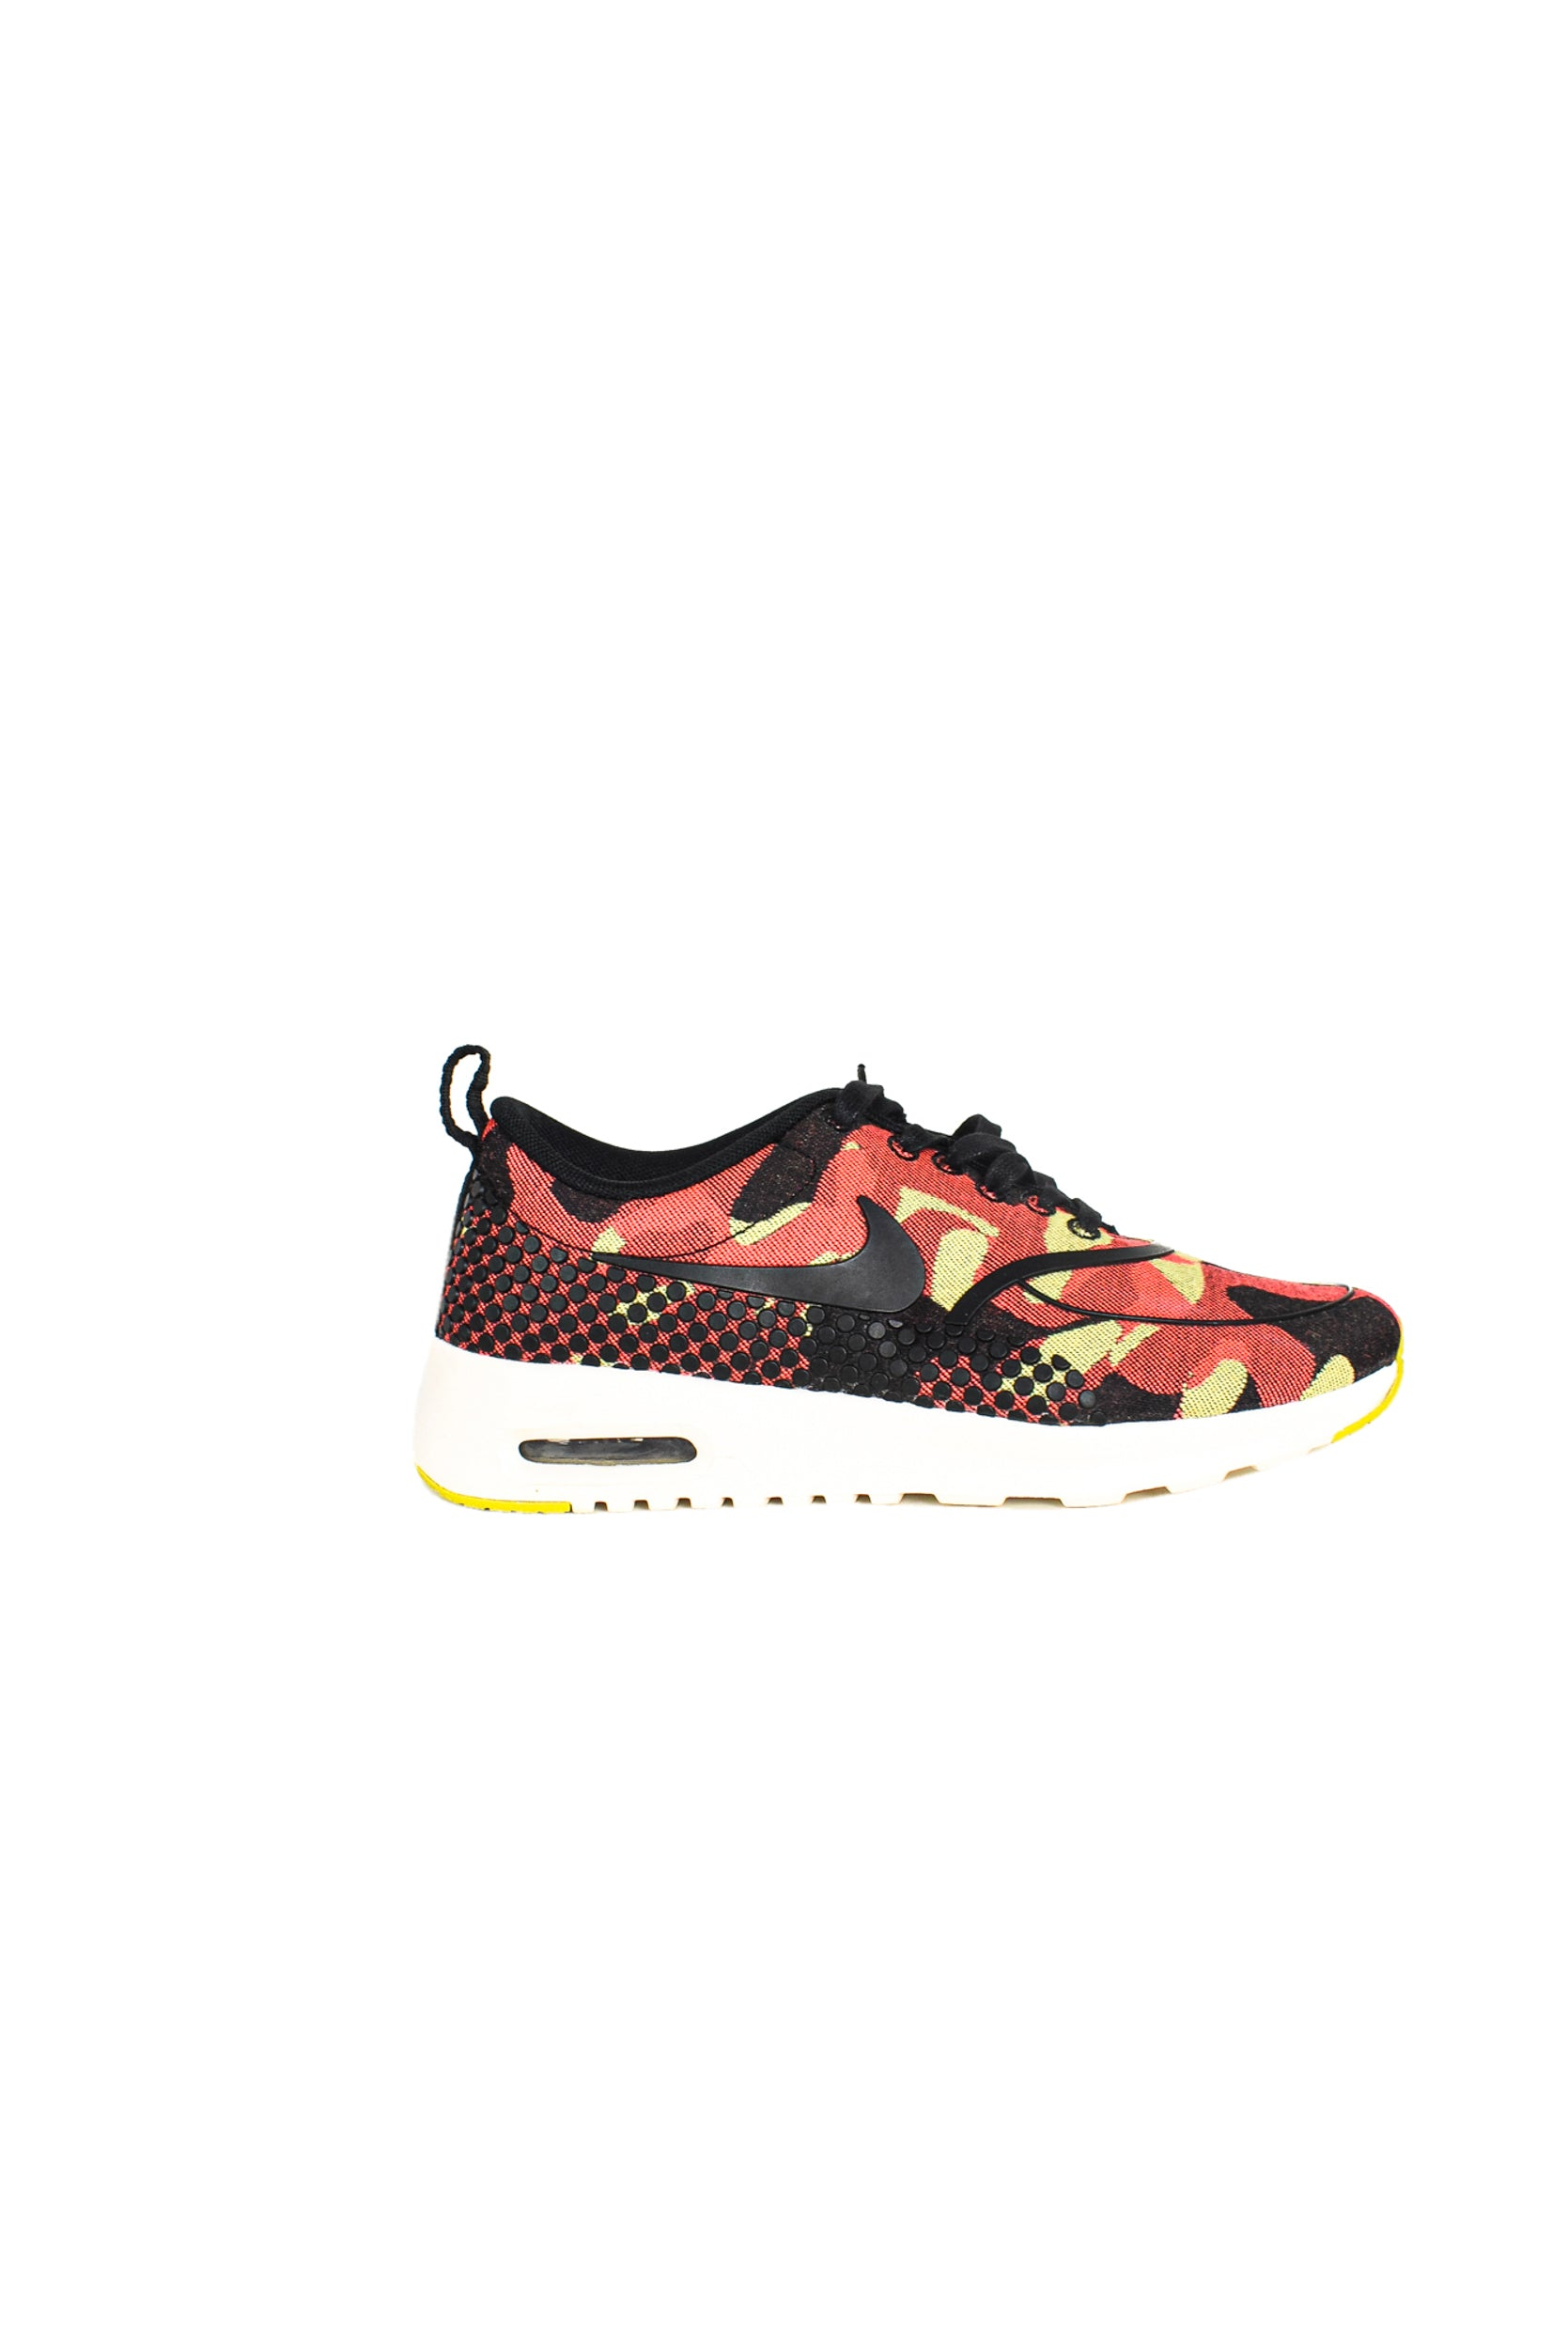 Nike Air Max Thea Sneakers 9Y (EU 35.5) at Retykle